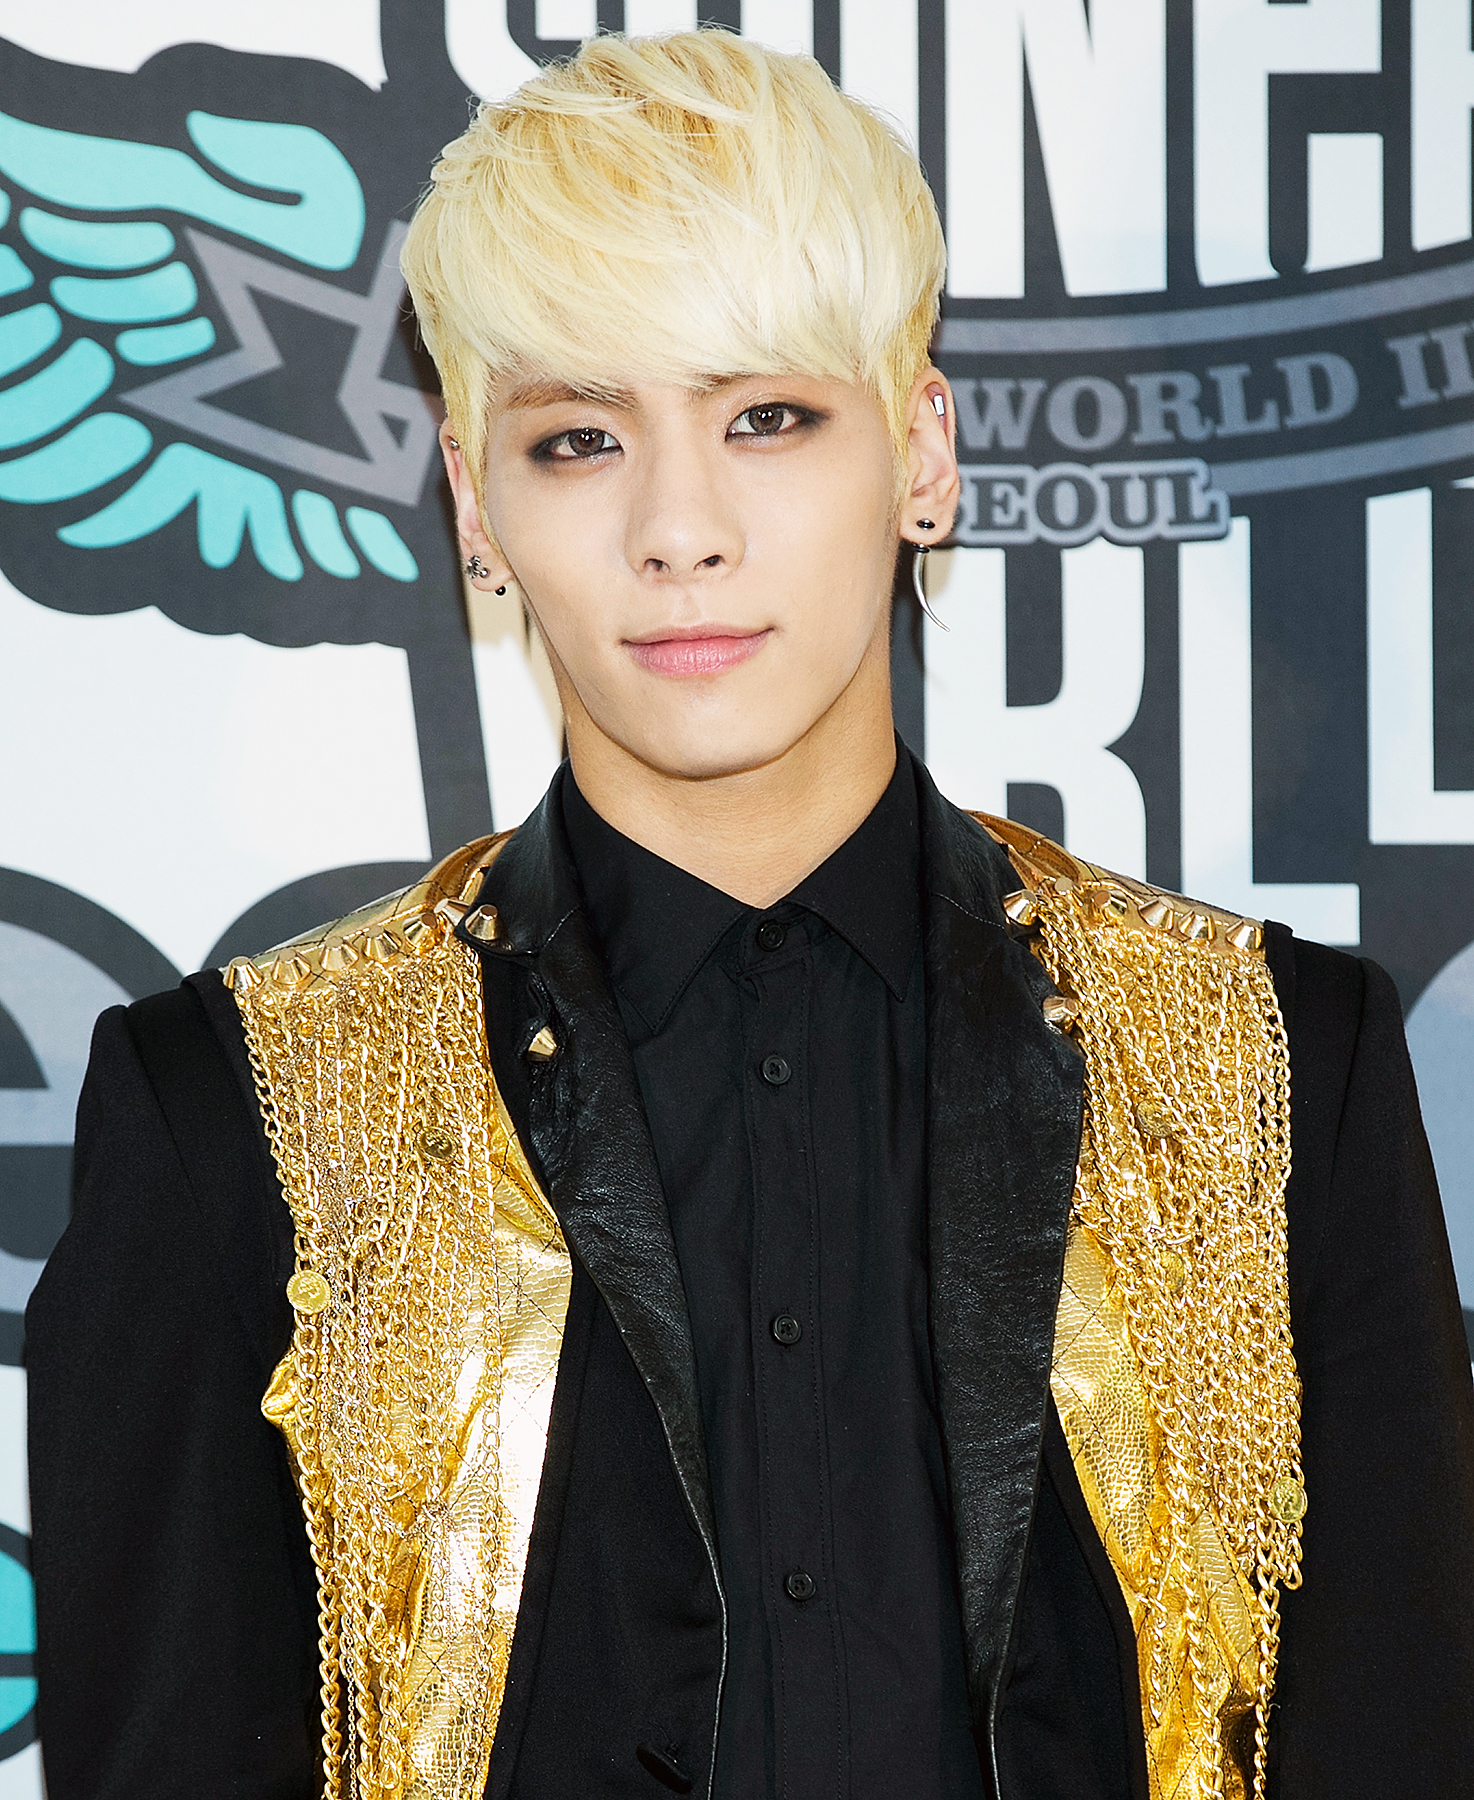 Jonghyun of South Korean boy band SHINee